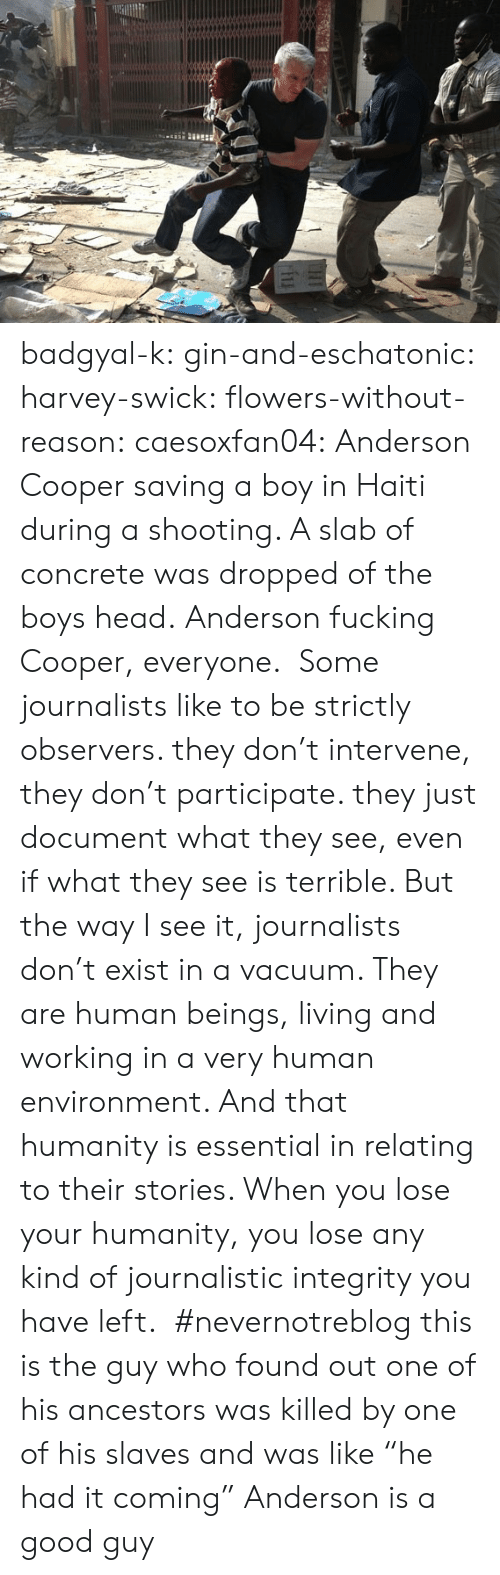 """It Coming: badgyal-k: gin-and-eschatonic:  harvey-swick:  flowers-without-reason:  caesoxfan04: Anderson Cooper saving a boy in Haiti during a shooting. A slab of concrete was dropped of the boys head. Anderson fucking Cooper, everyone. Some journalists like to be strictly observers. they don't intervene, they don't participate. they just document what they see, even if what they see is terrible. But the way I see it, journalists don't exist in a vacuum. They are human beings, living and working in a very human environment. And that humanity is essential in relating to their stories. When you lose your humanity, you lose any kind of journalistic integrity you have left.  #nevernotreblog  this is the guy who found out one of his ancestors was killed by one of his slaves and was like """"he had it coming""""    Anderson is a good guy"""